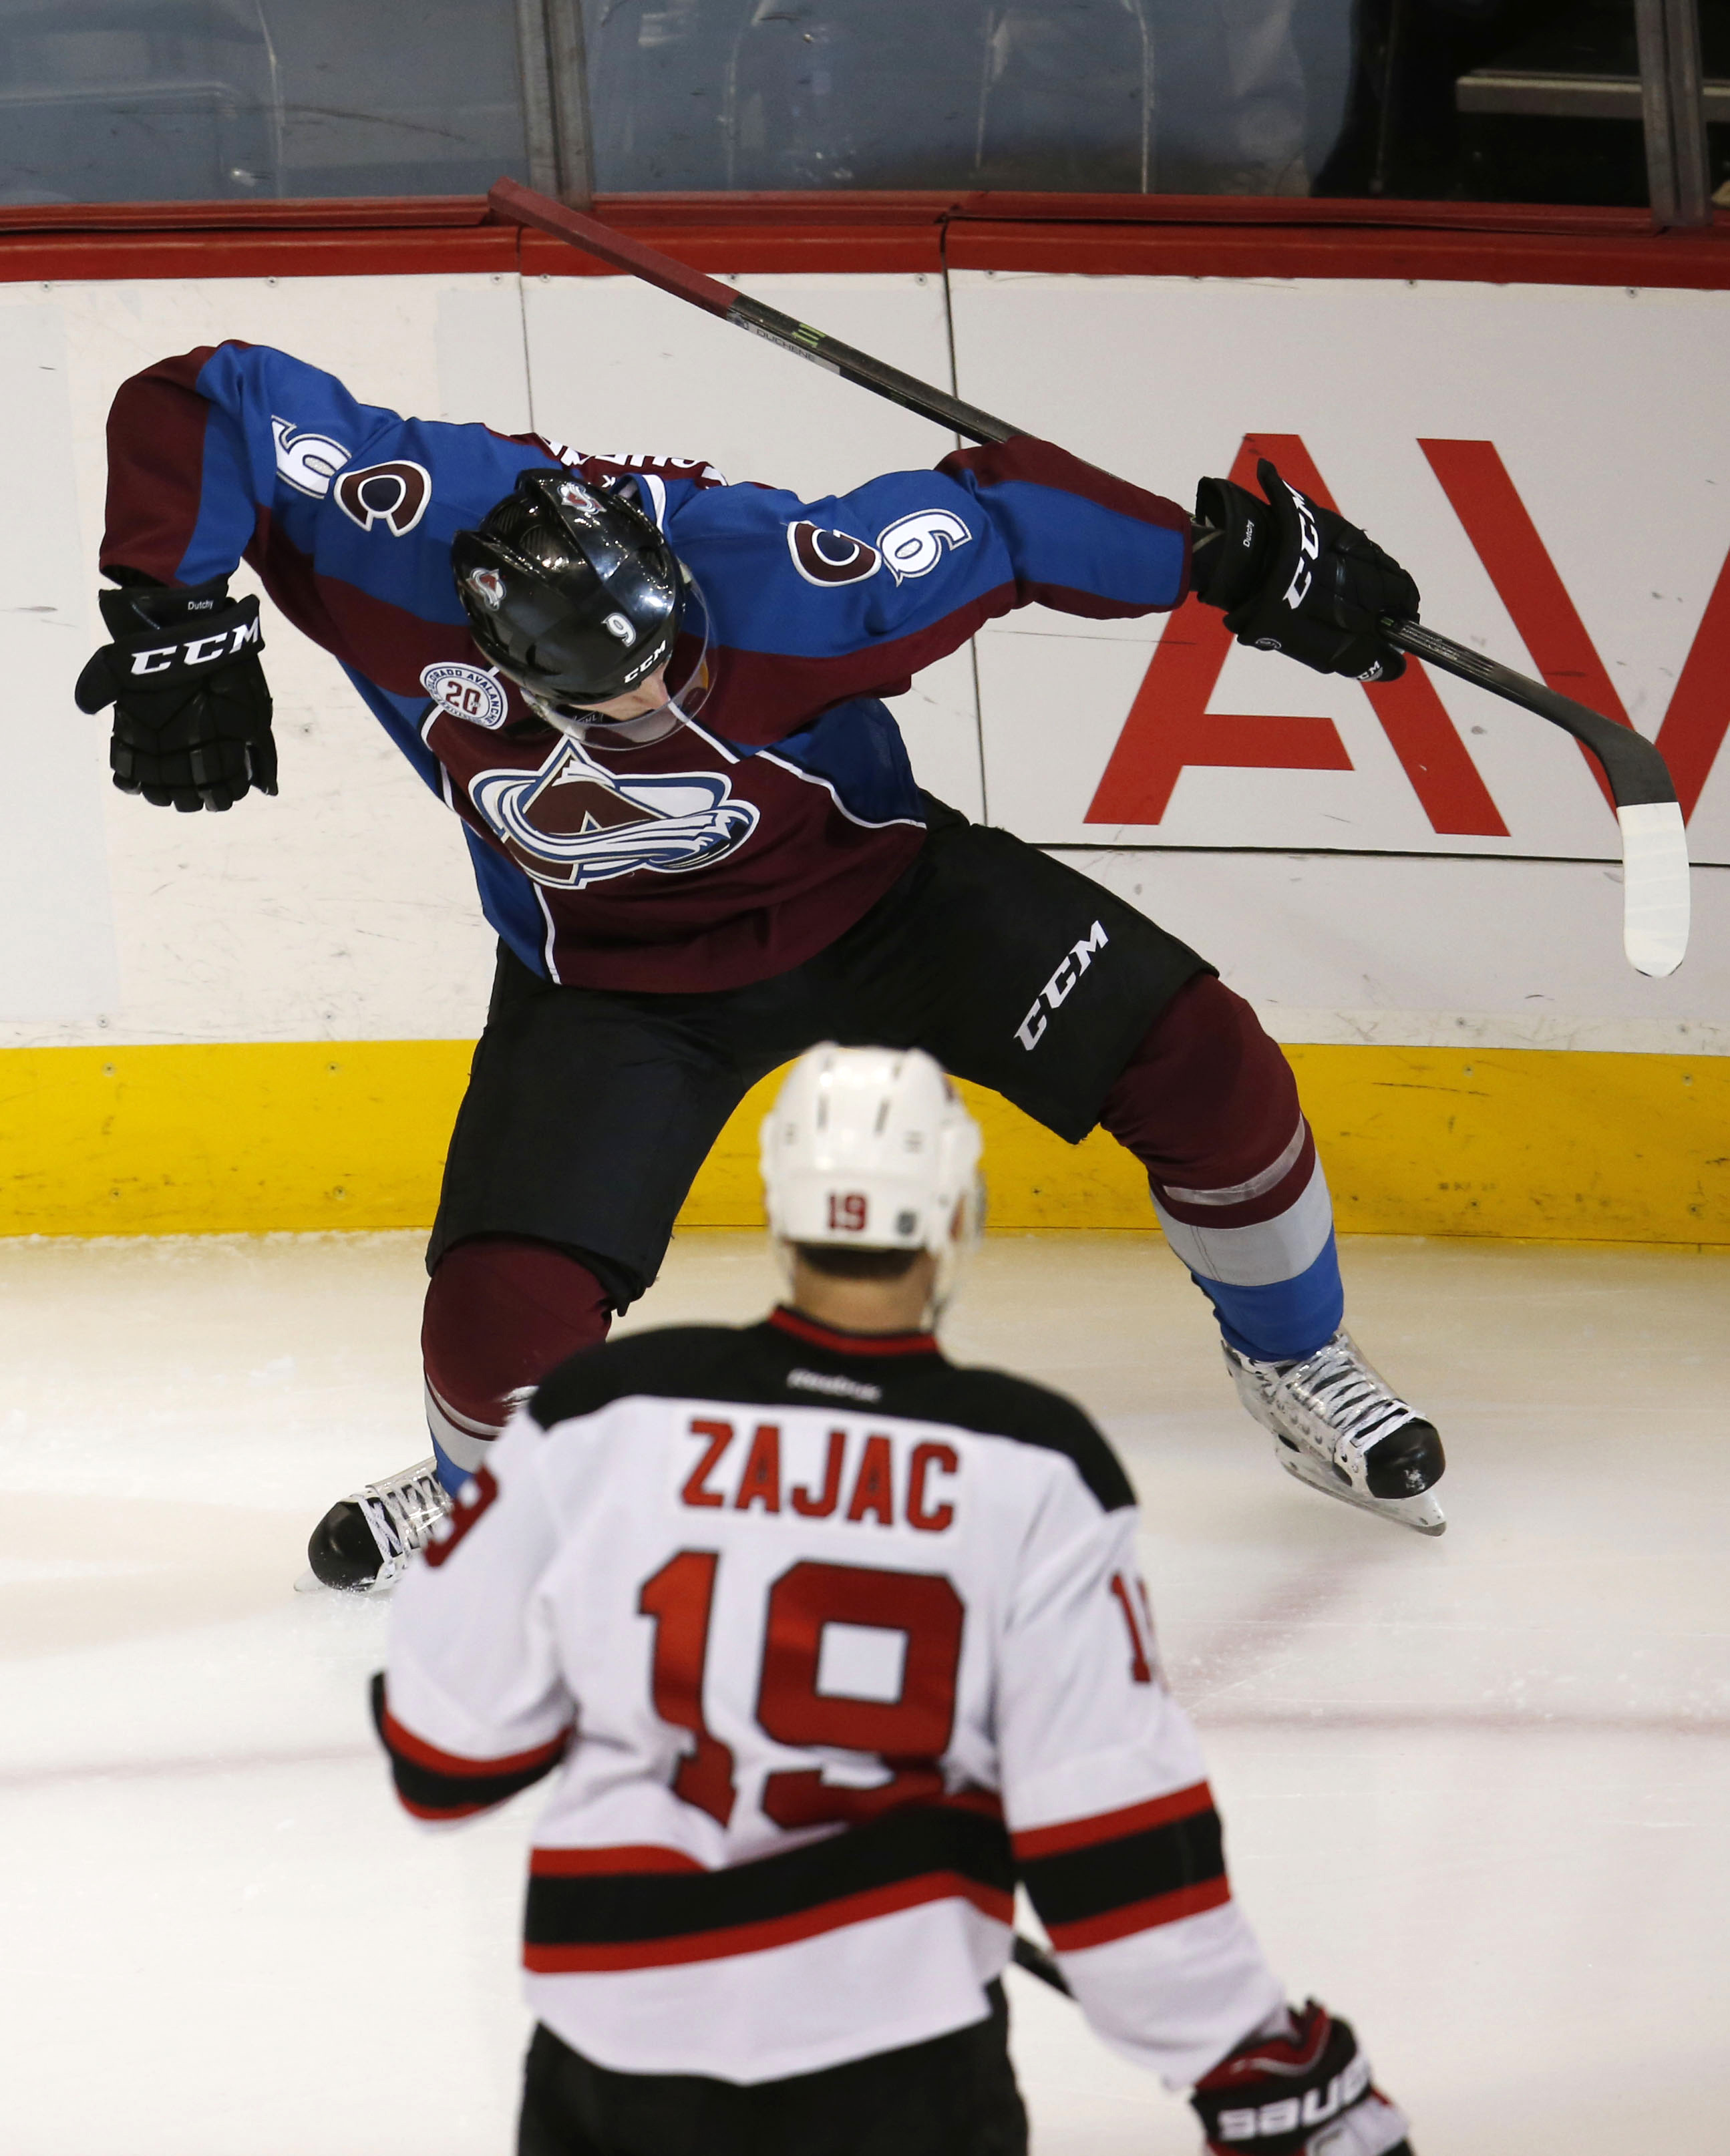 Colorado Avalanche center Matt Duchene, top, celebrates his goal as New Jersey Devils center Travis Zajac watches during the first period of an NHL hockey game Thursday, Jan. 14, 2016, in Denver. (AP Photo/David Zalubowski)